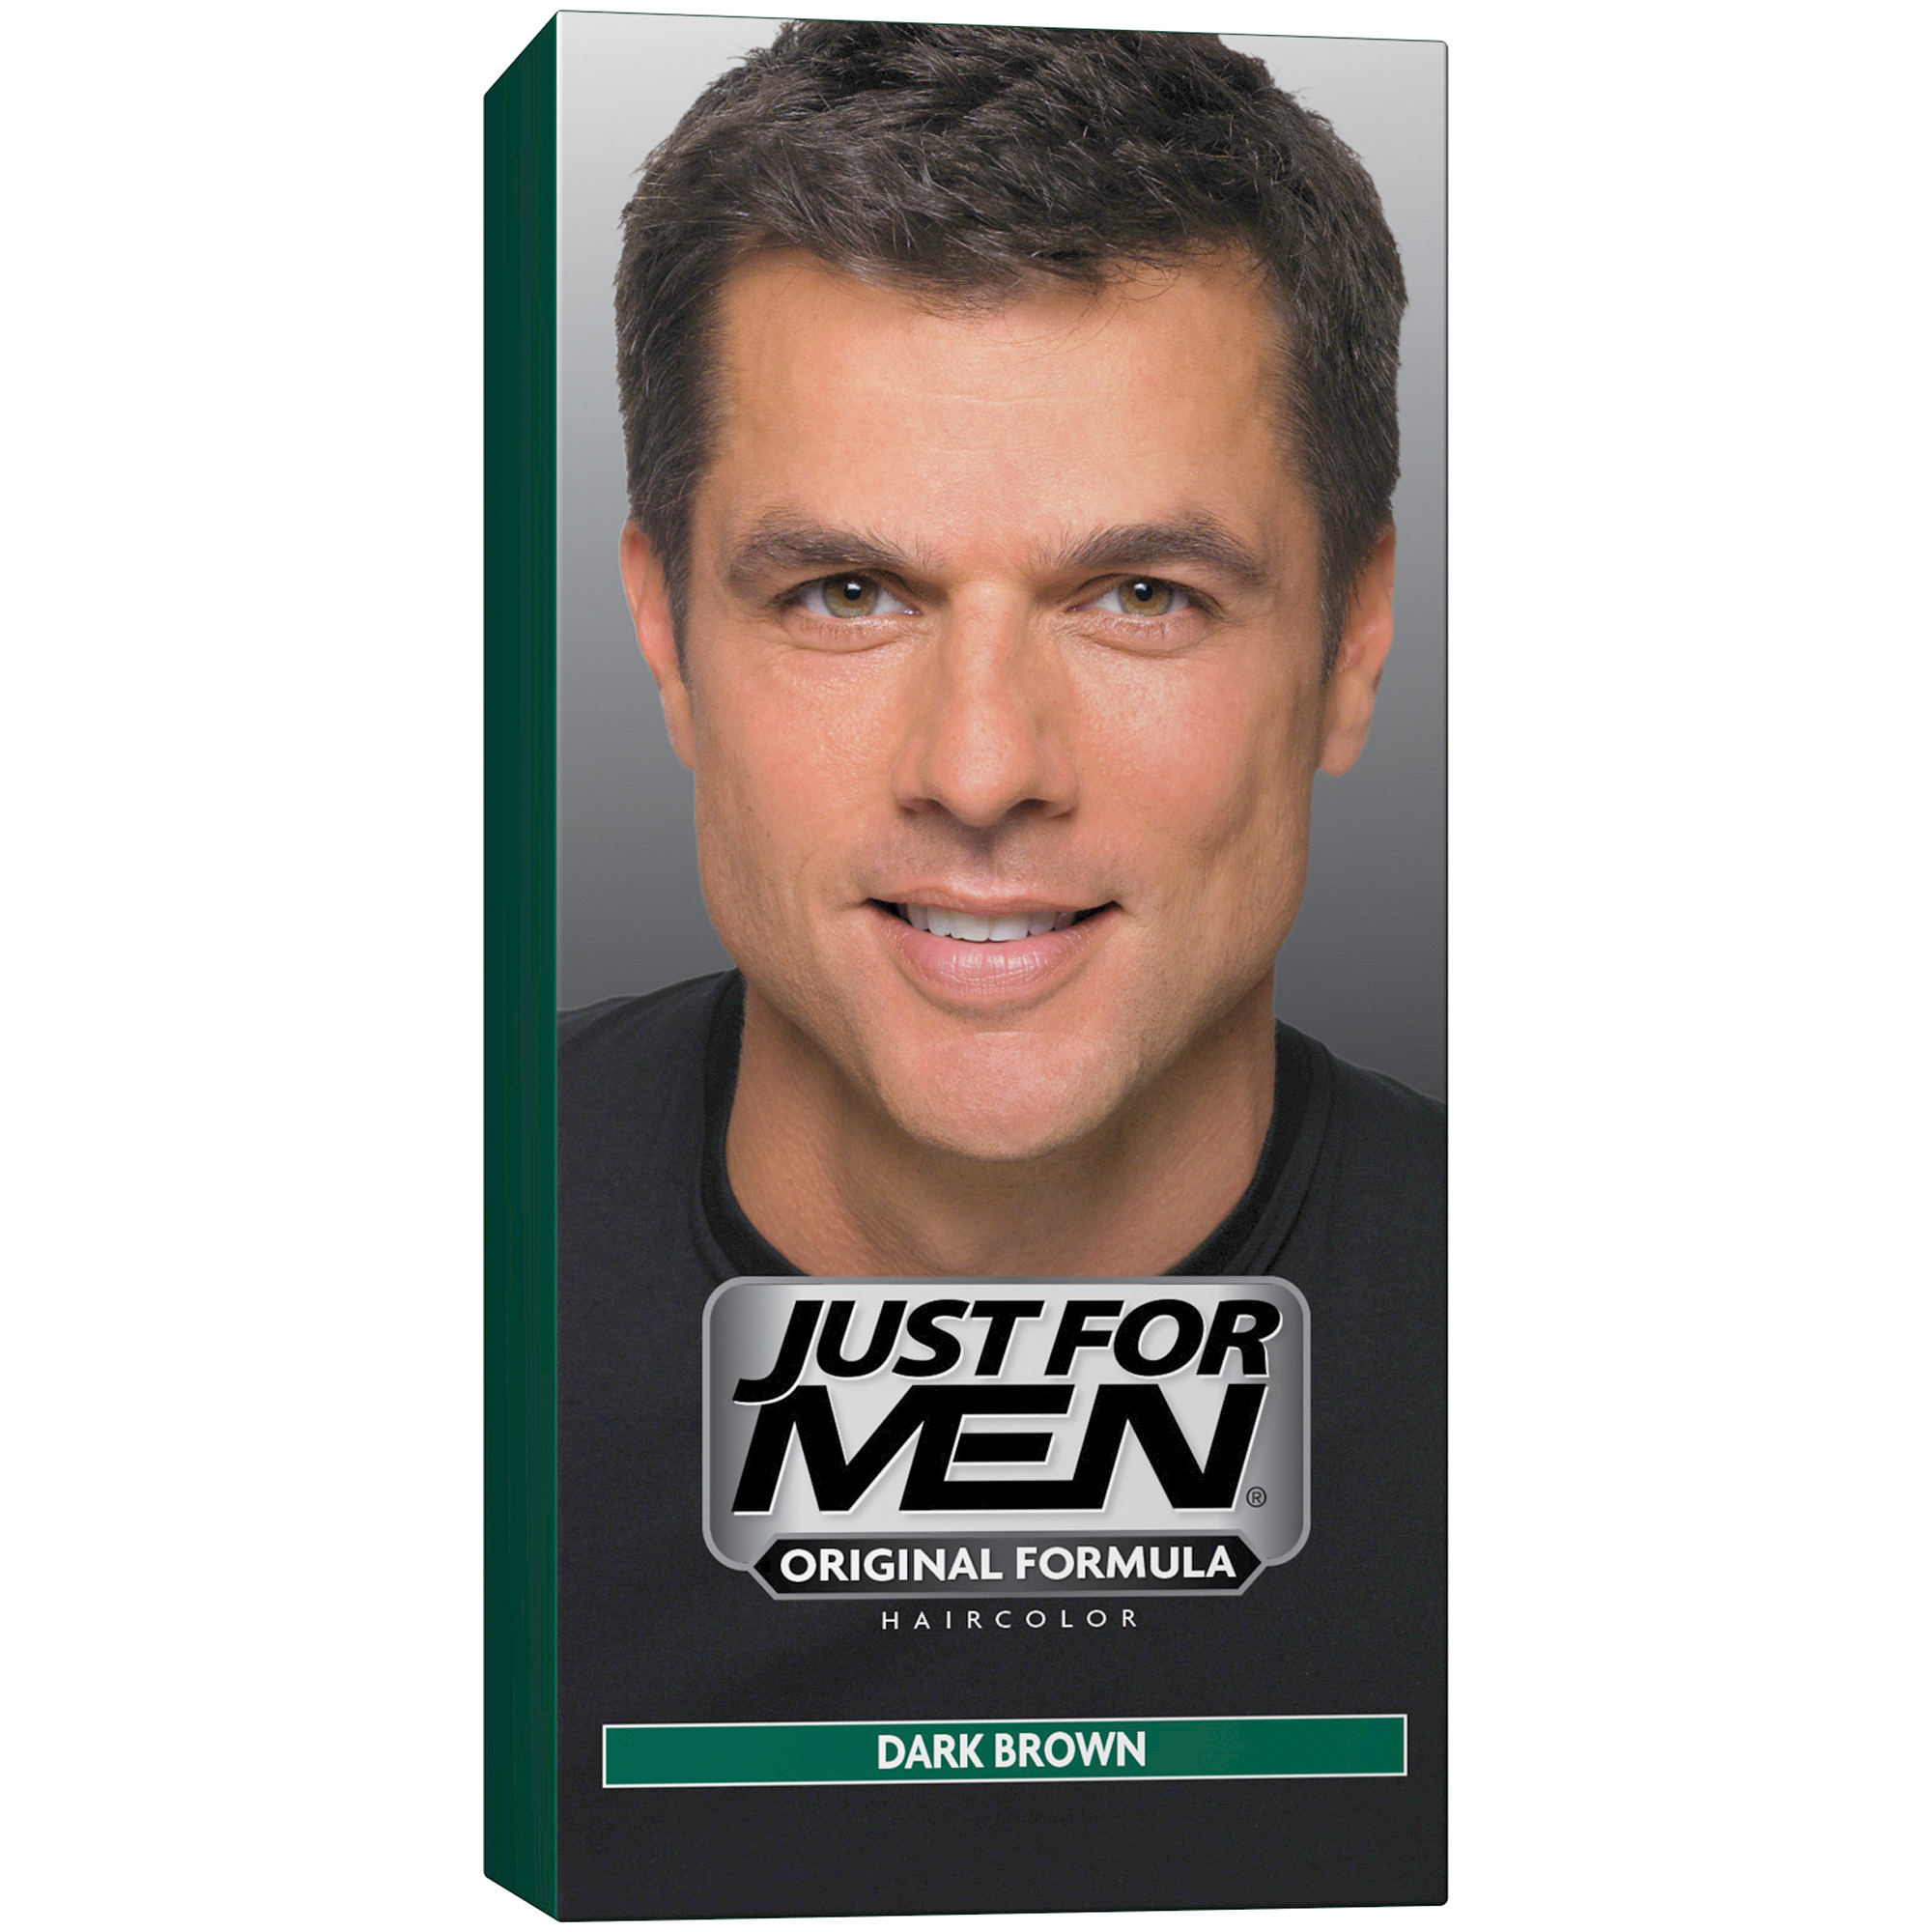 Just For Men Shampoo-In Hair Color Dark Brown, 1 Application, Pack ...